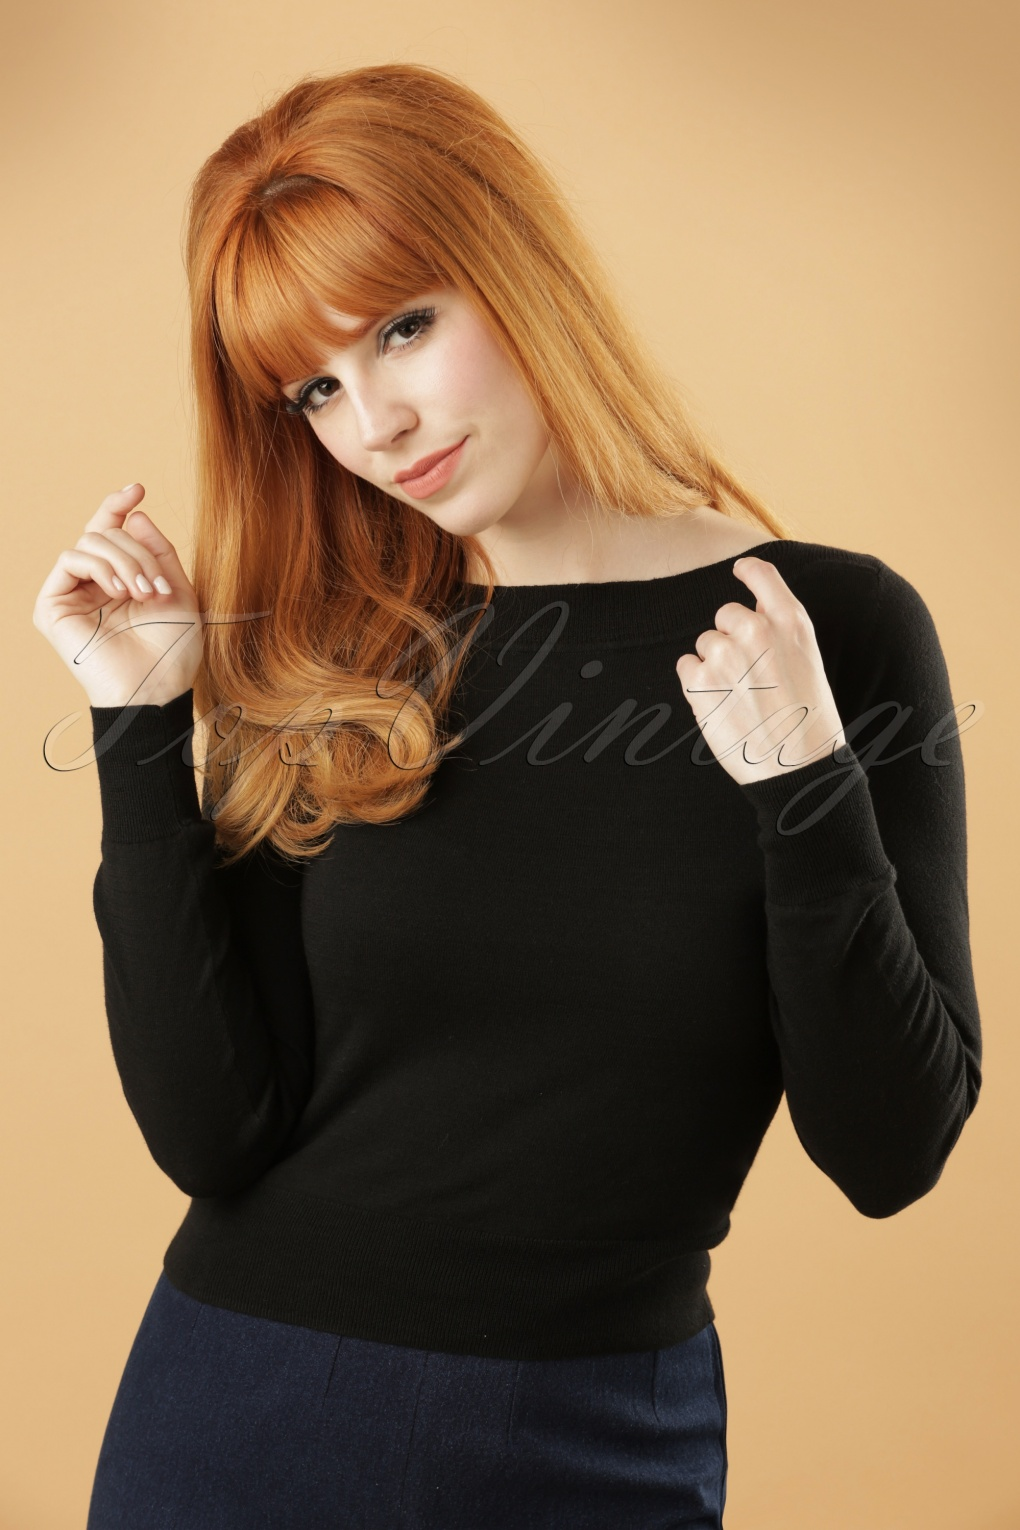 1960s -1970s Blouses, Shirts and Tops 50s Boatneck Cottonclub Top in Black £54.10 AT vintagedancer.com